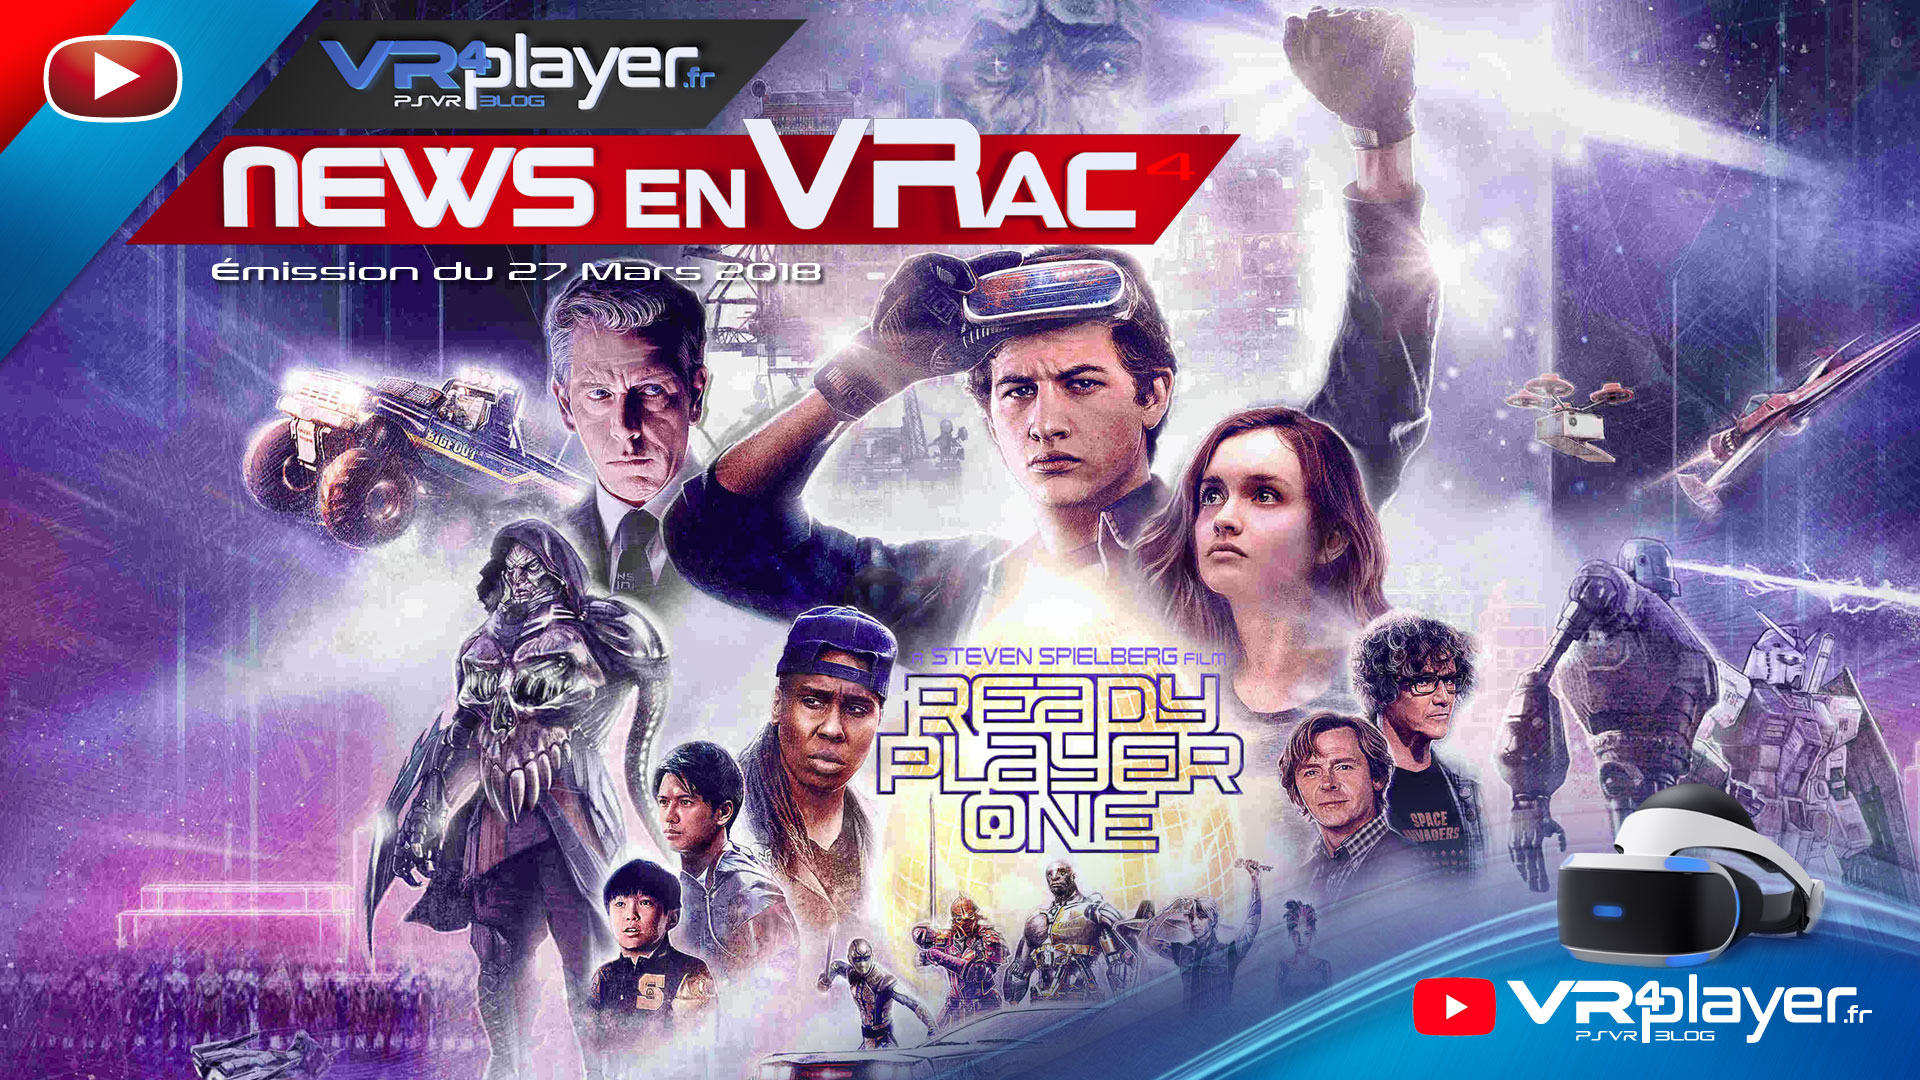 PlayStation VR Les News en VRac 27 mars 2018 VR4player.fr